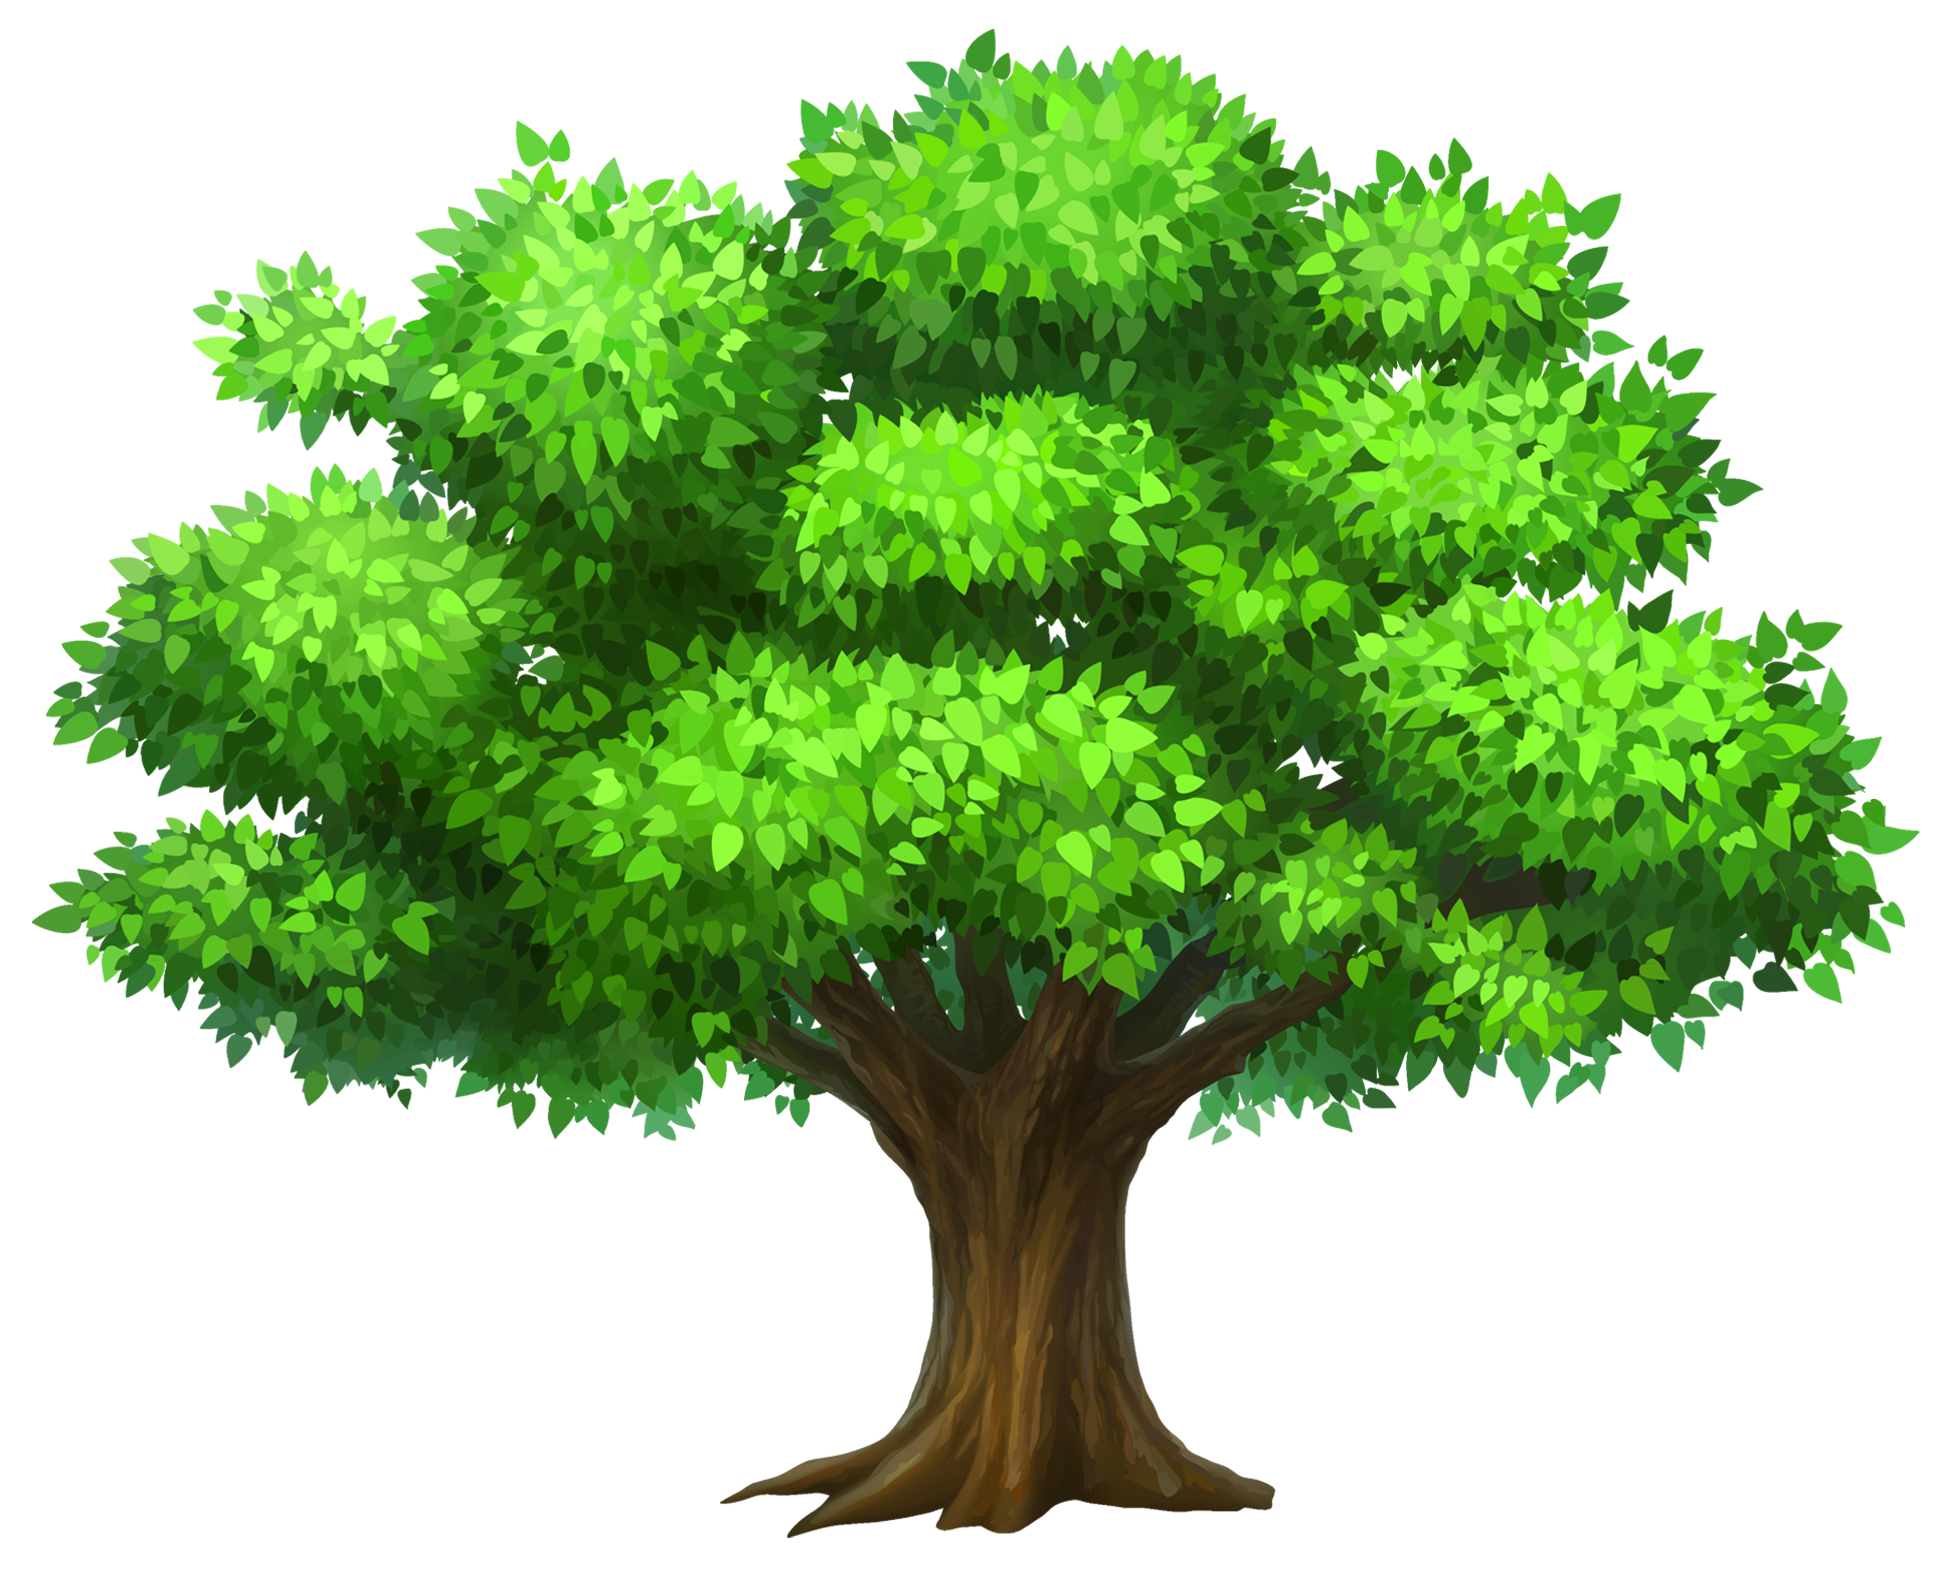 Free Oak Tree Clipart of Oak tree tree c-Free Oak Tree Clipart of Oak tree tree clipart clipart image for your  personal projects, presentations or web designs.-8